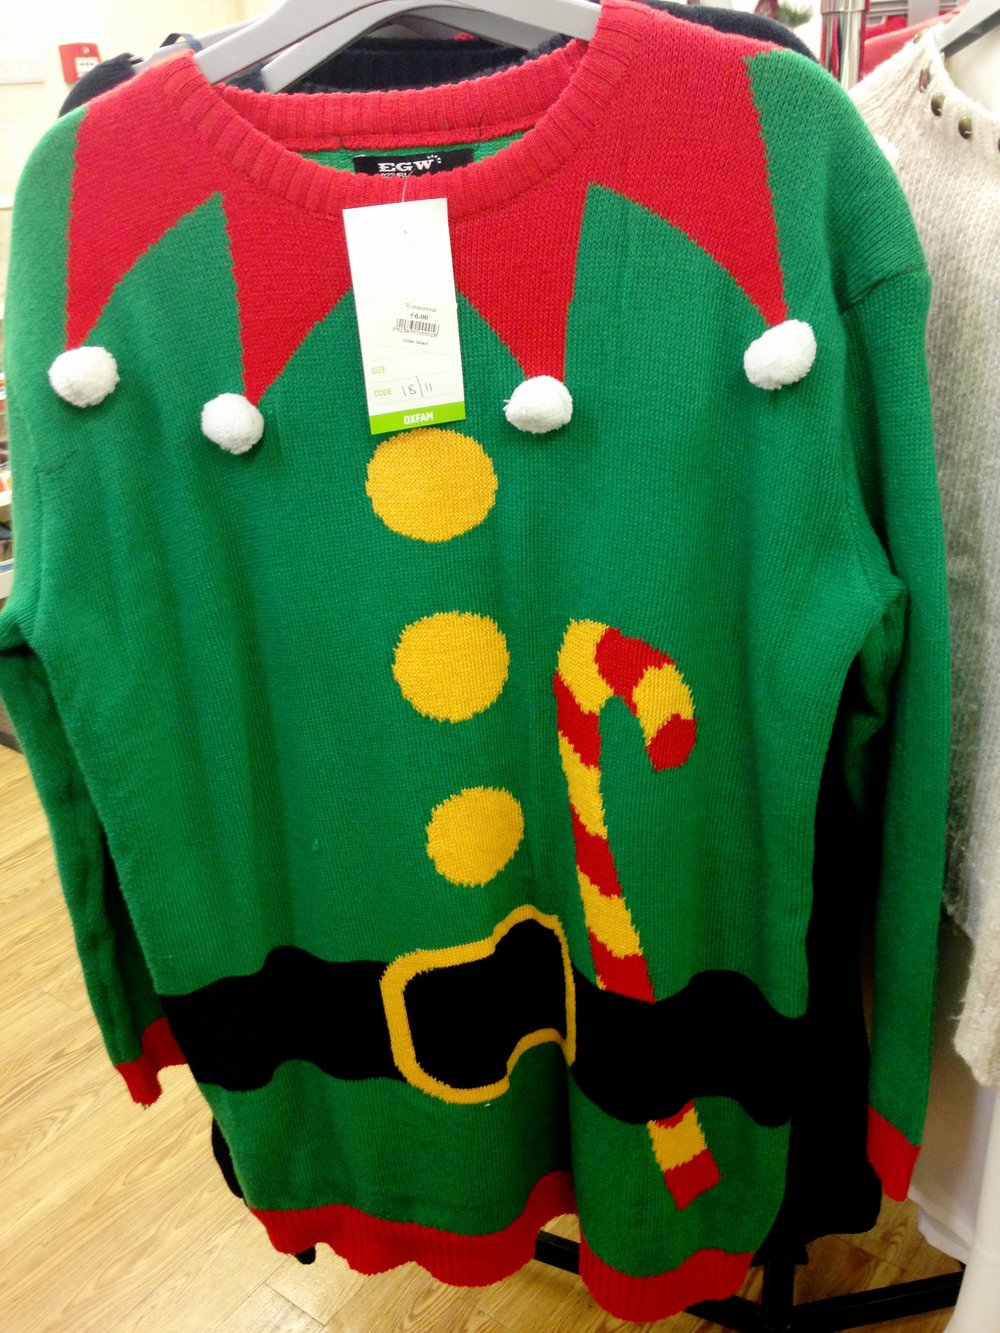 Another cheerful style from Oxfam! €6.00